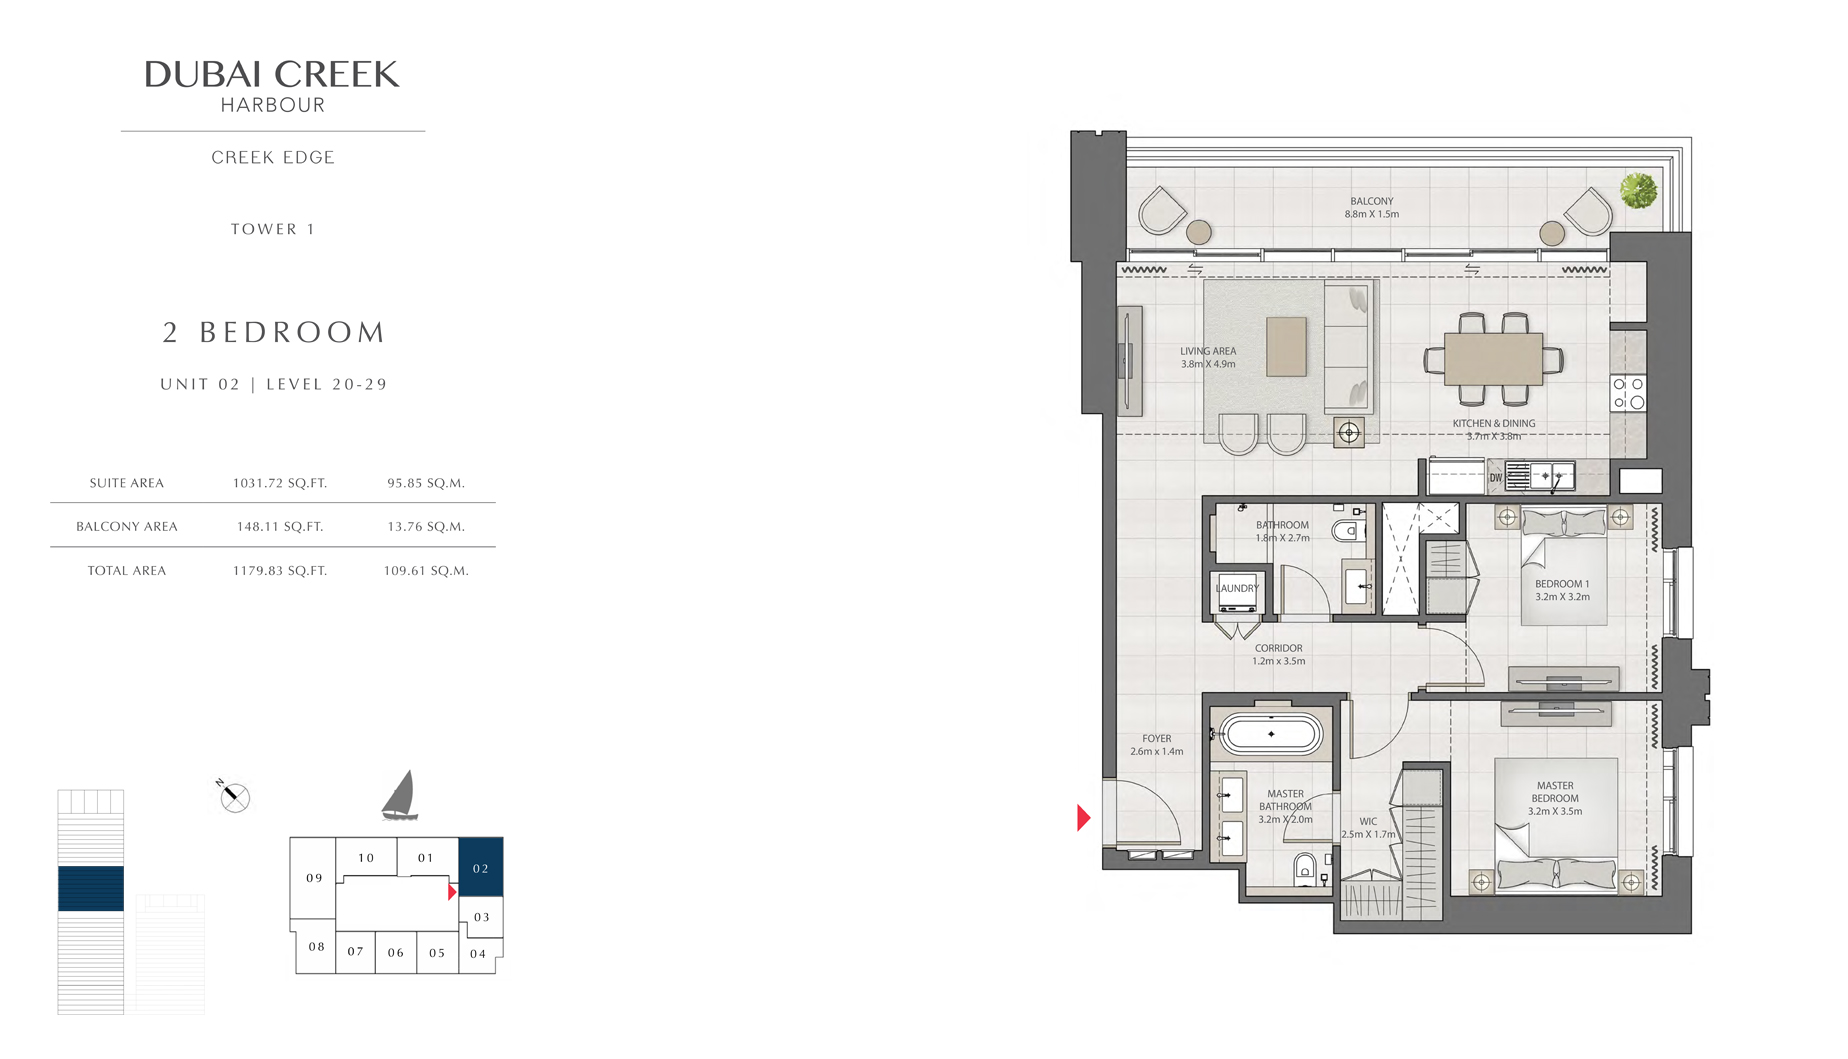 2 Bedroom Tower 1 Unit 02 Level 20-29  Size 1179 sq.ft